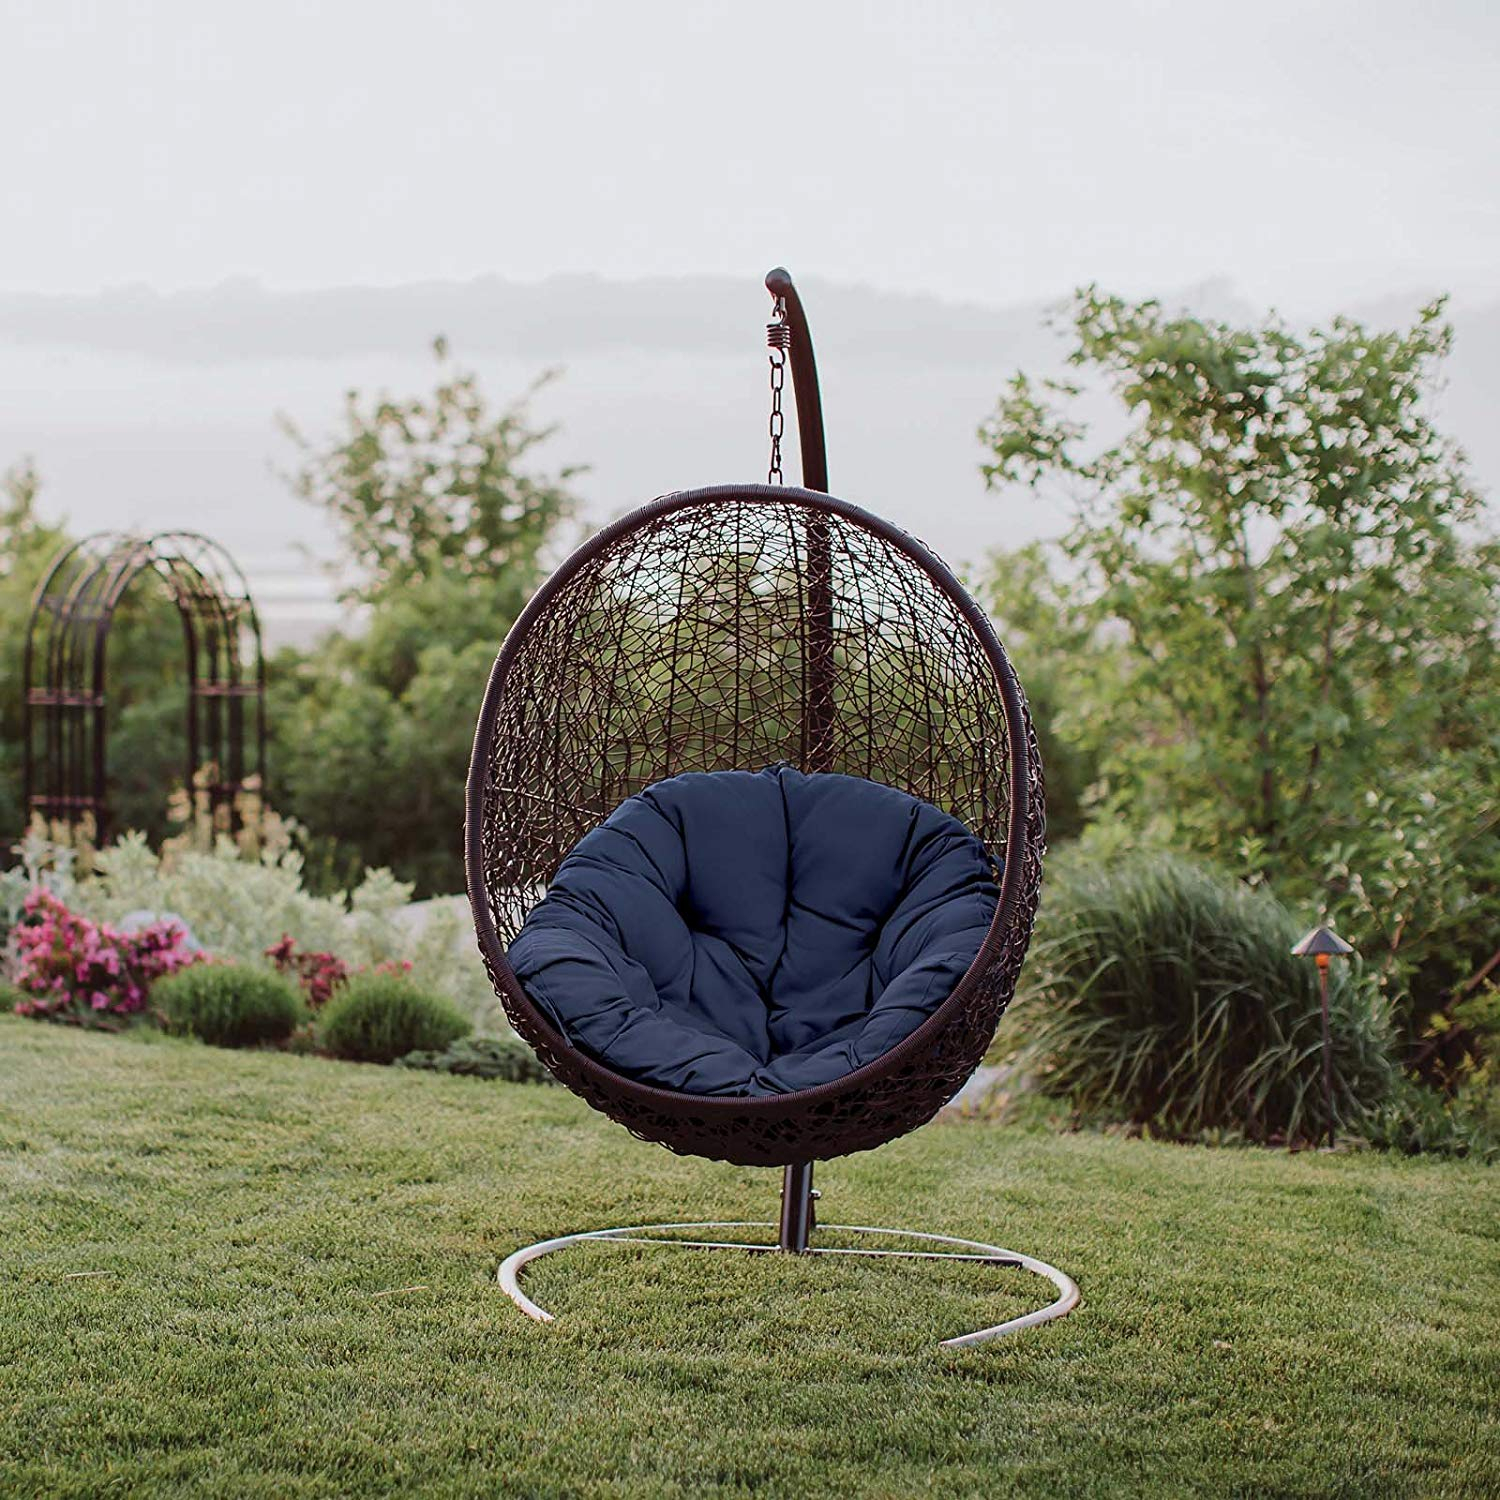 10 Best Egg Chairs Of 2020 (Review & Guide) – Thebeastreviews Inside Outdoor Wicker Plastic Tear Porch Swings With Stand (View 5 of 25)